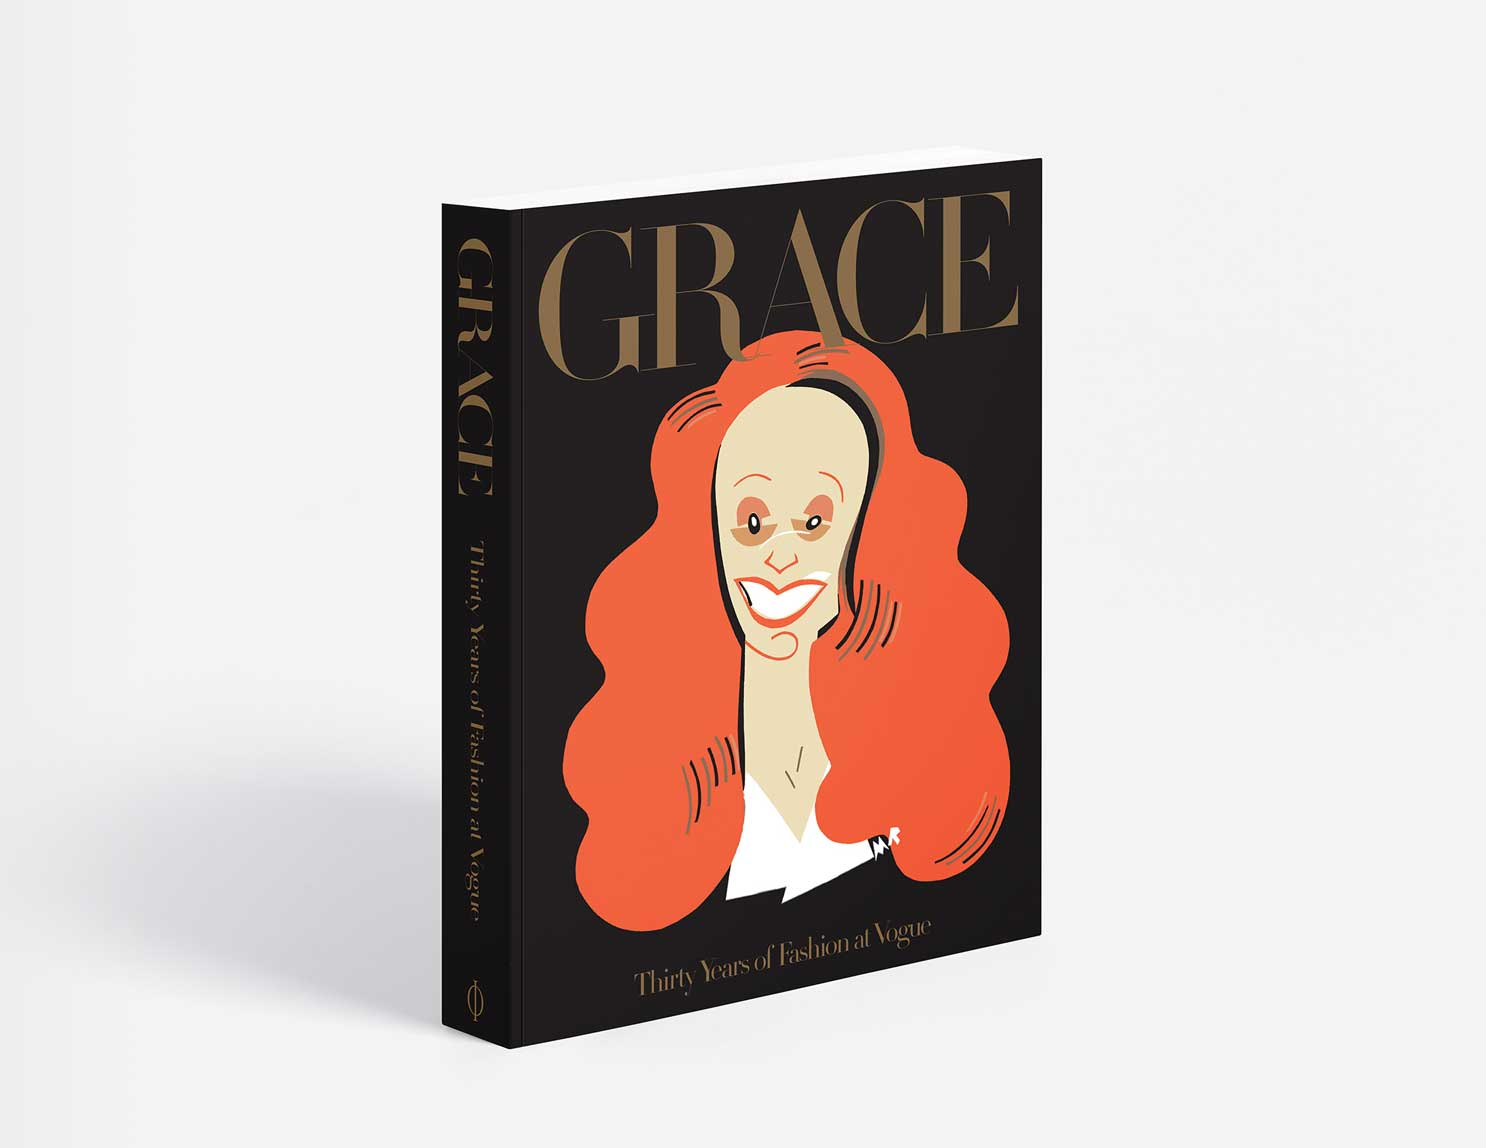 Fashion history by Grace Coddington